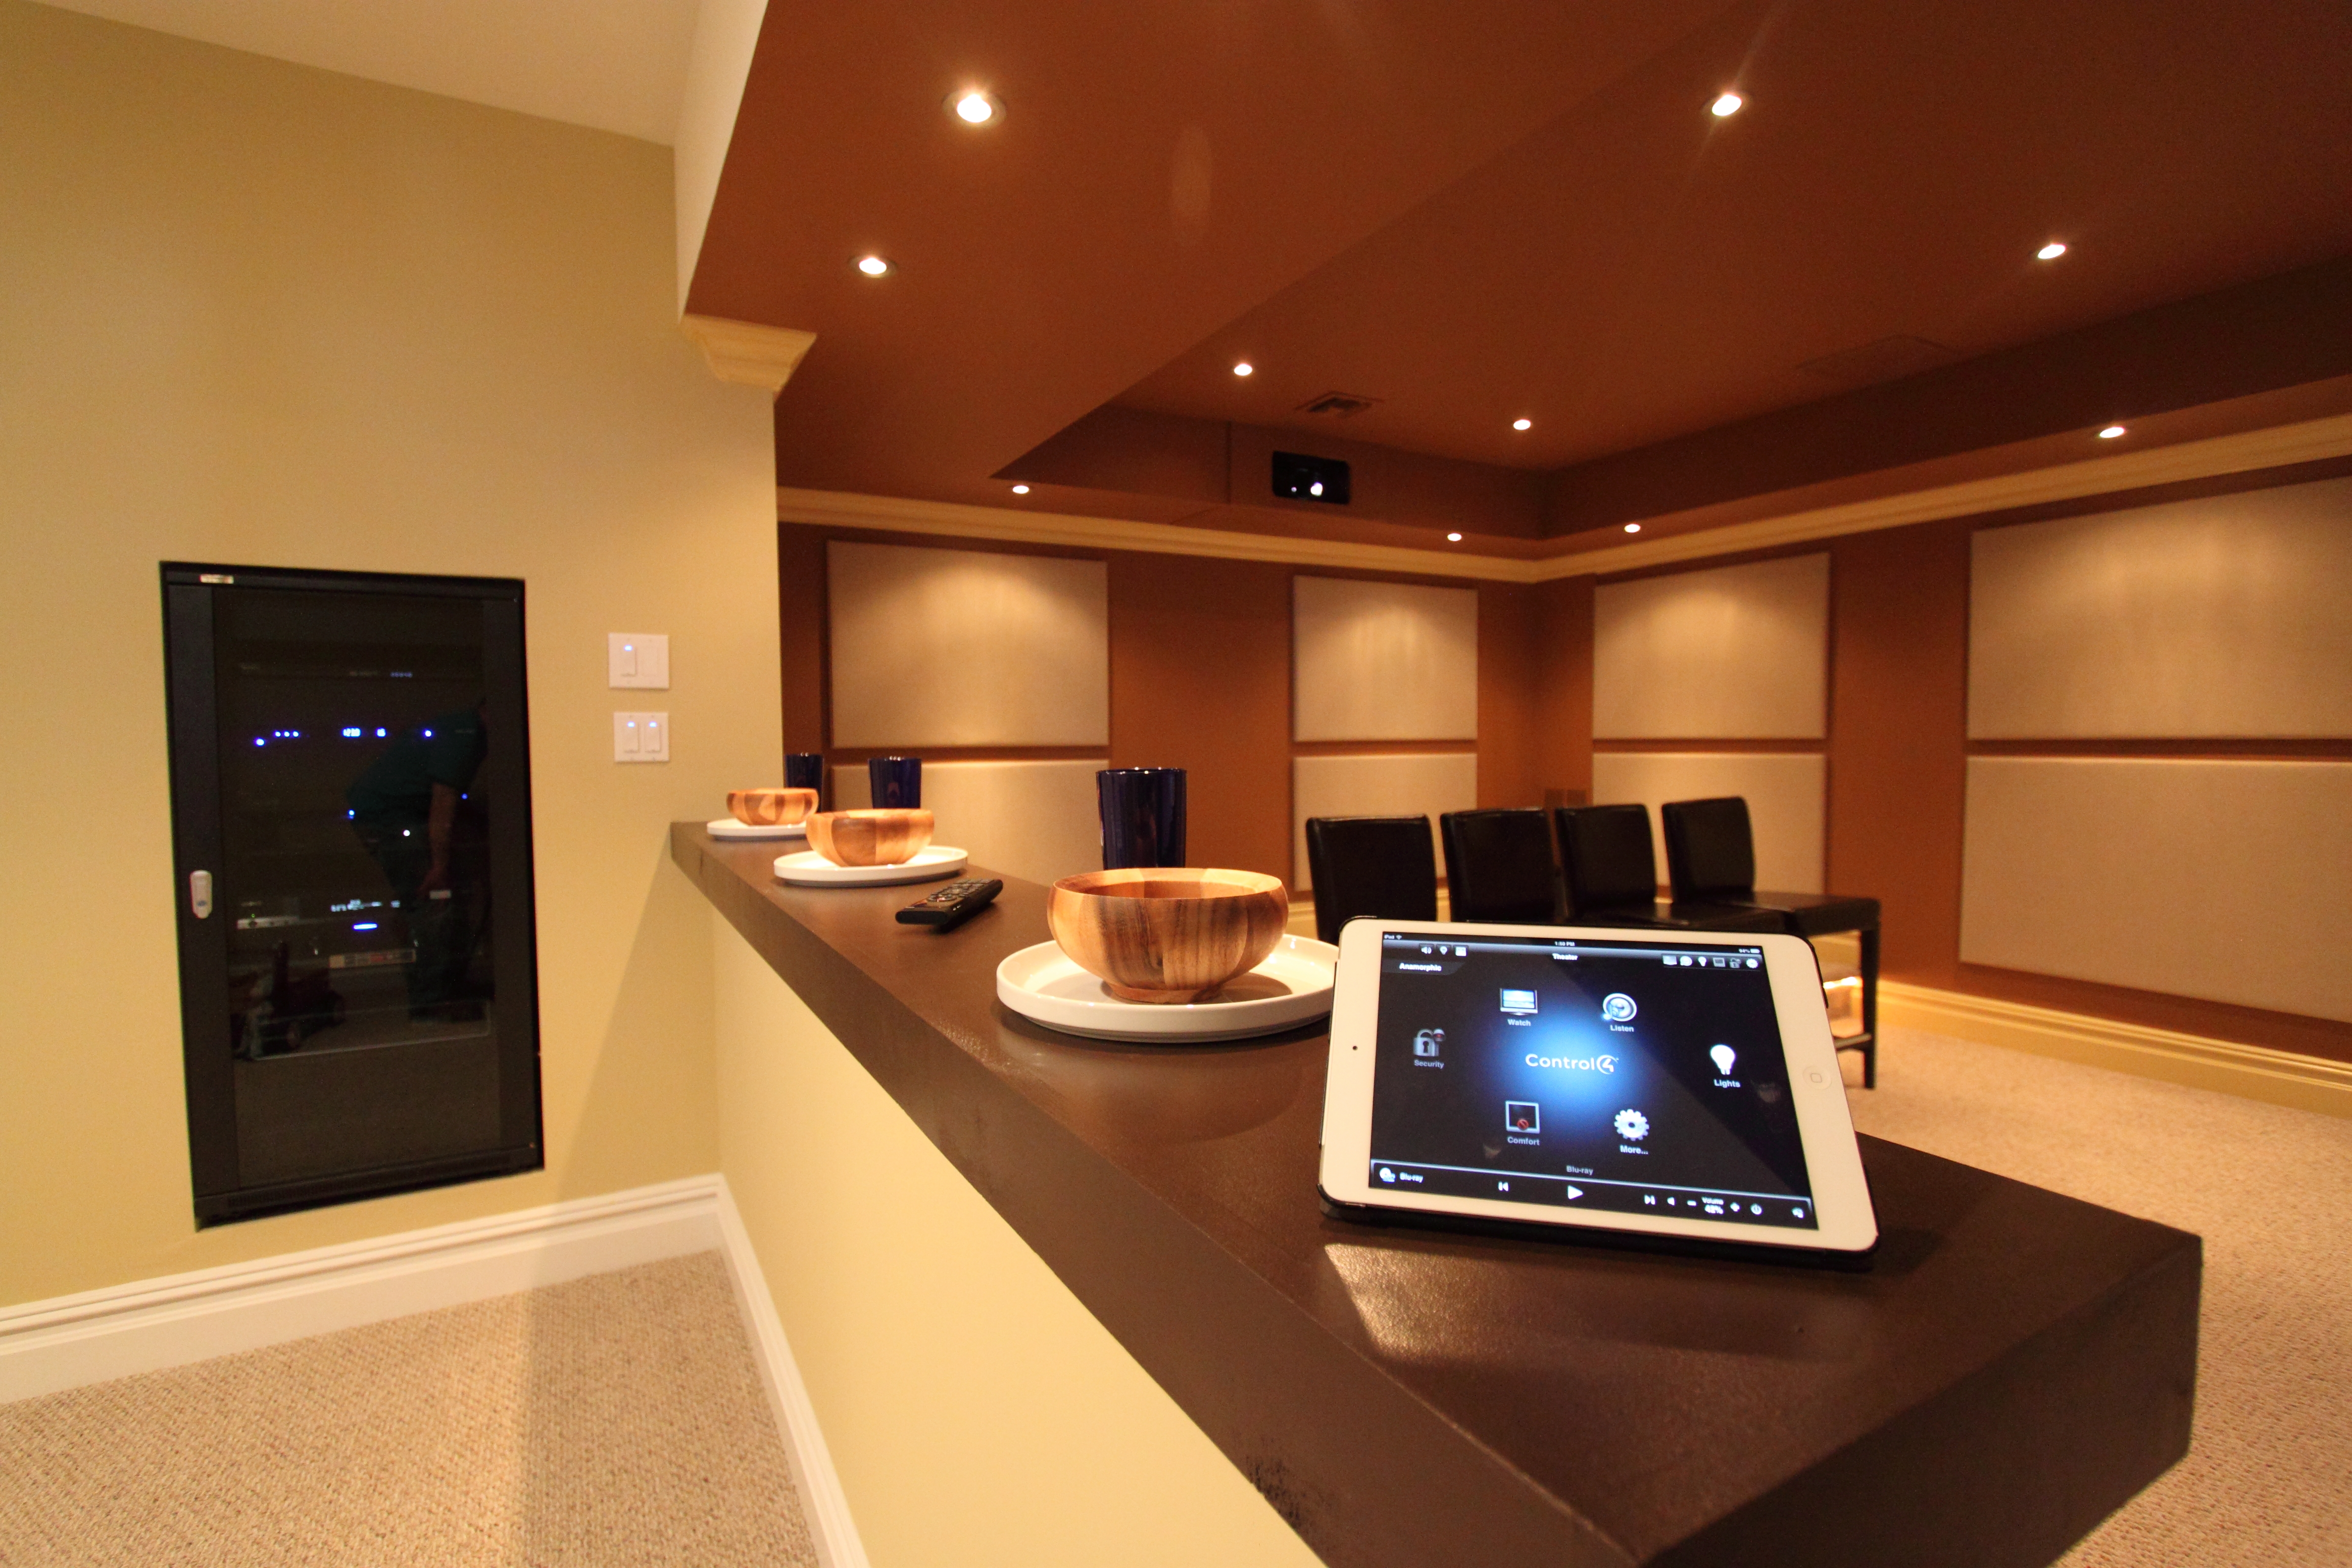 light florida lighting high systems smart end home miami control